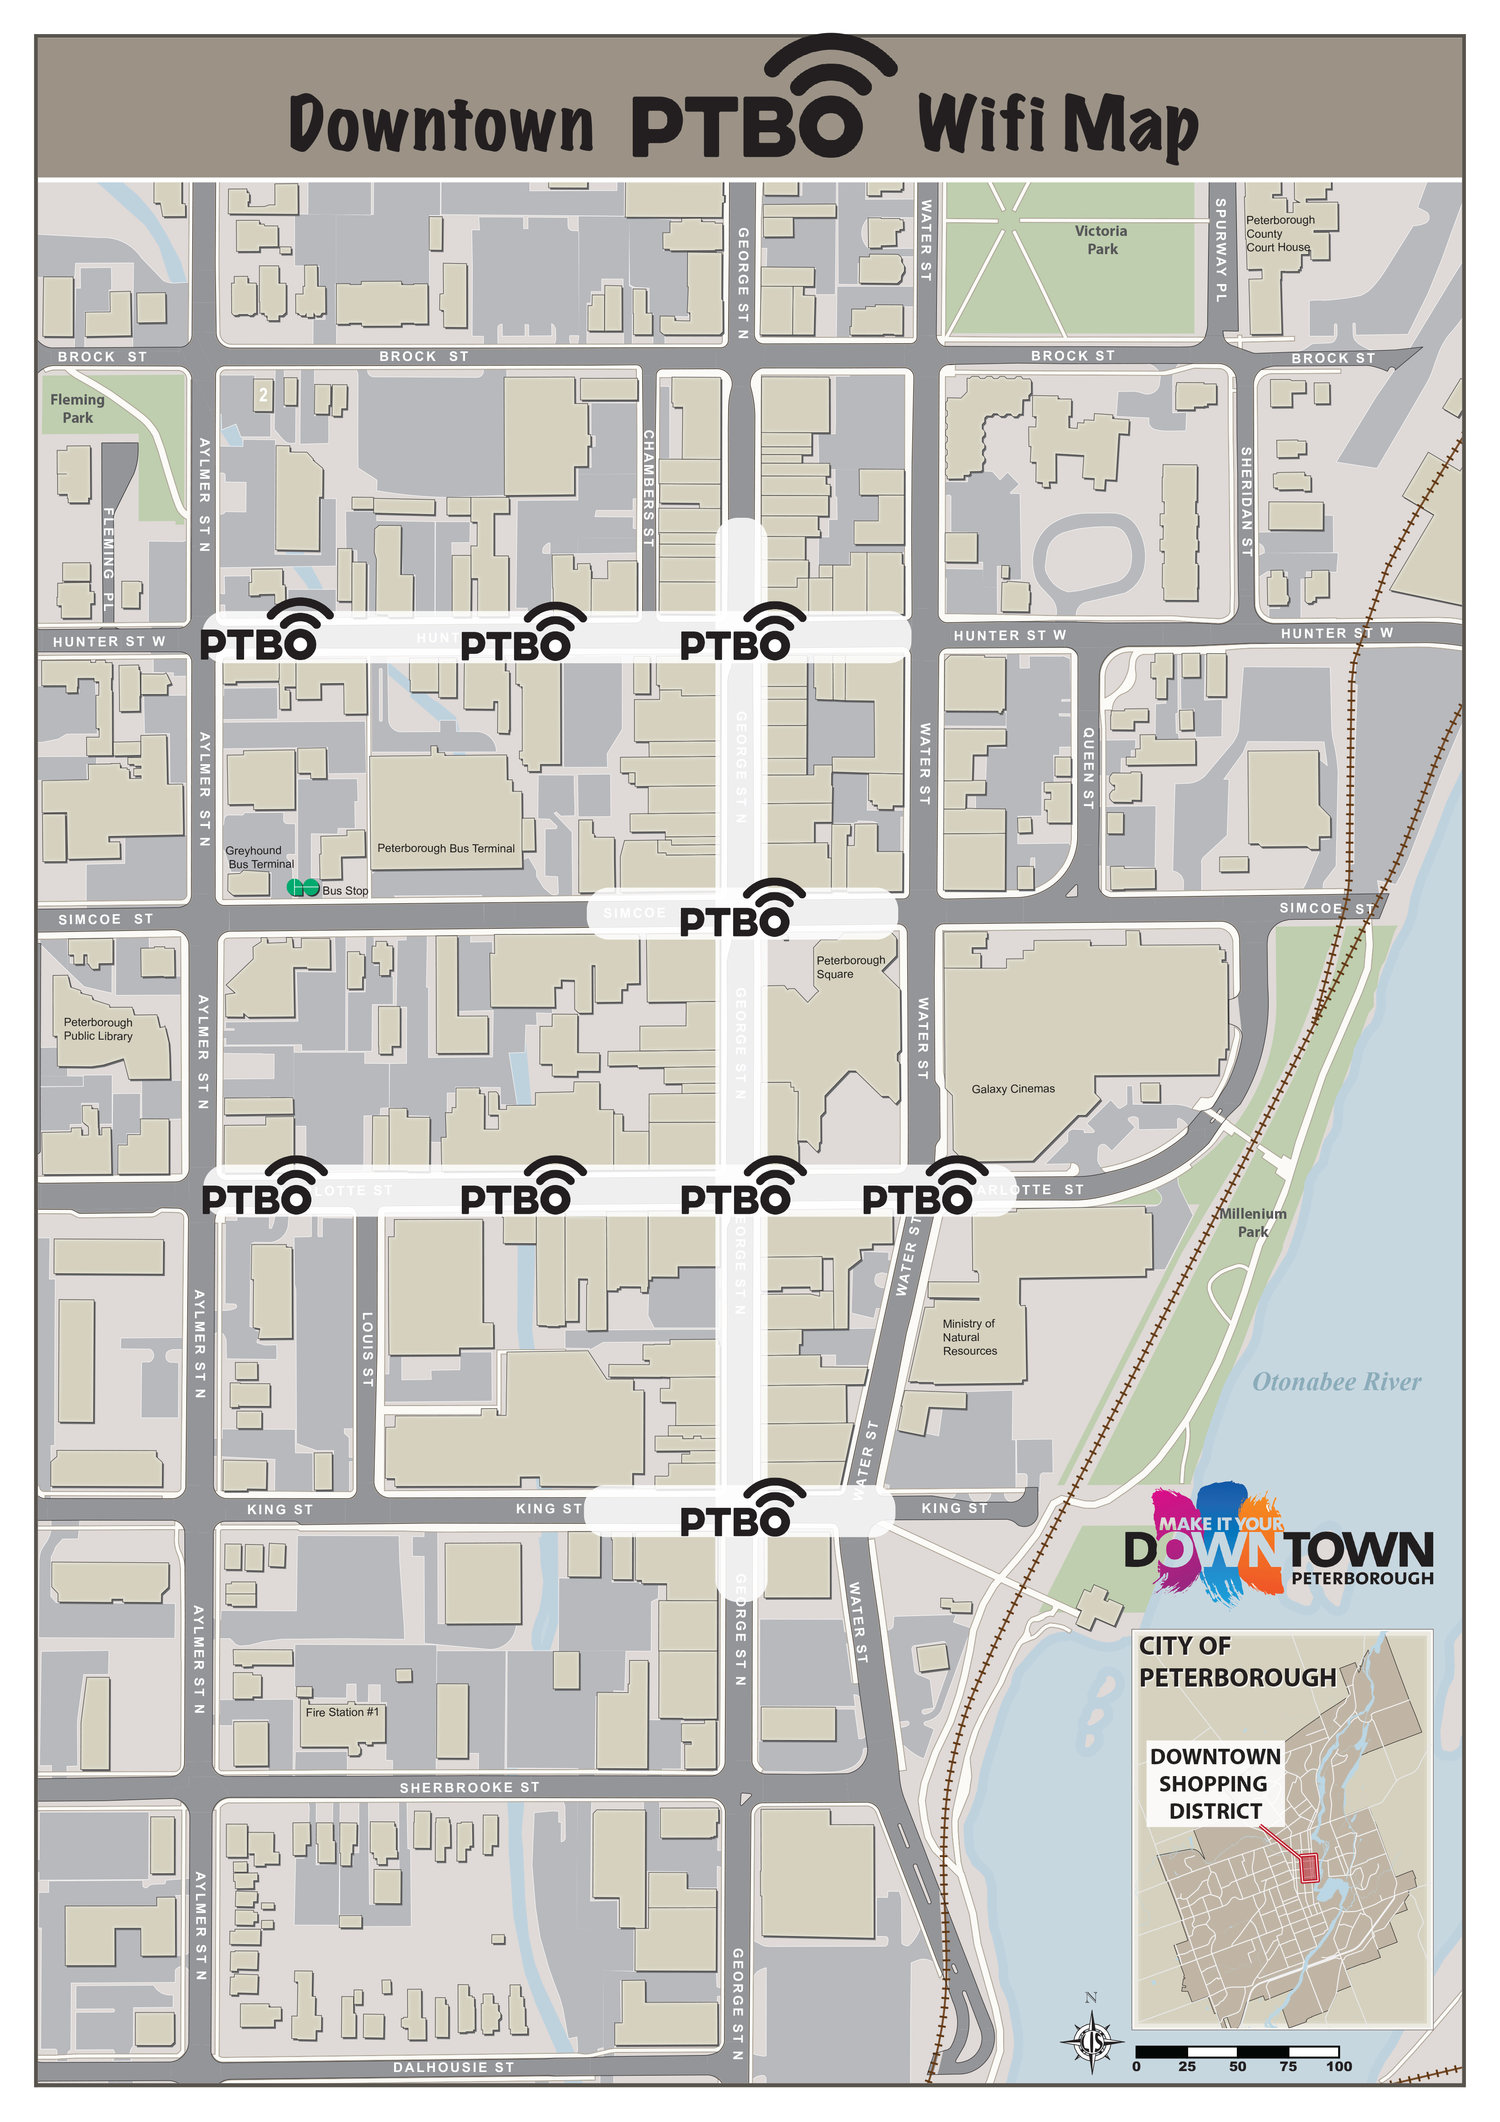 Downtown Peterborough Is Now Offering FREE WiFi